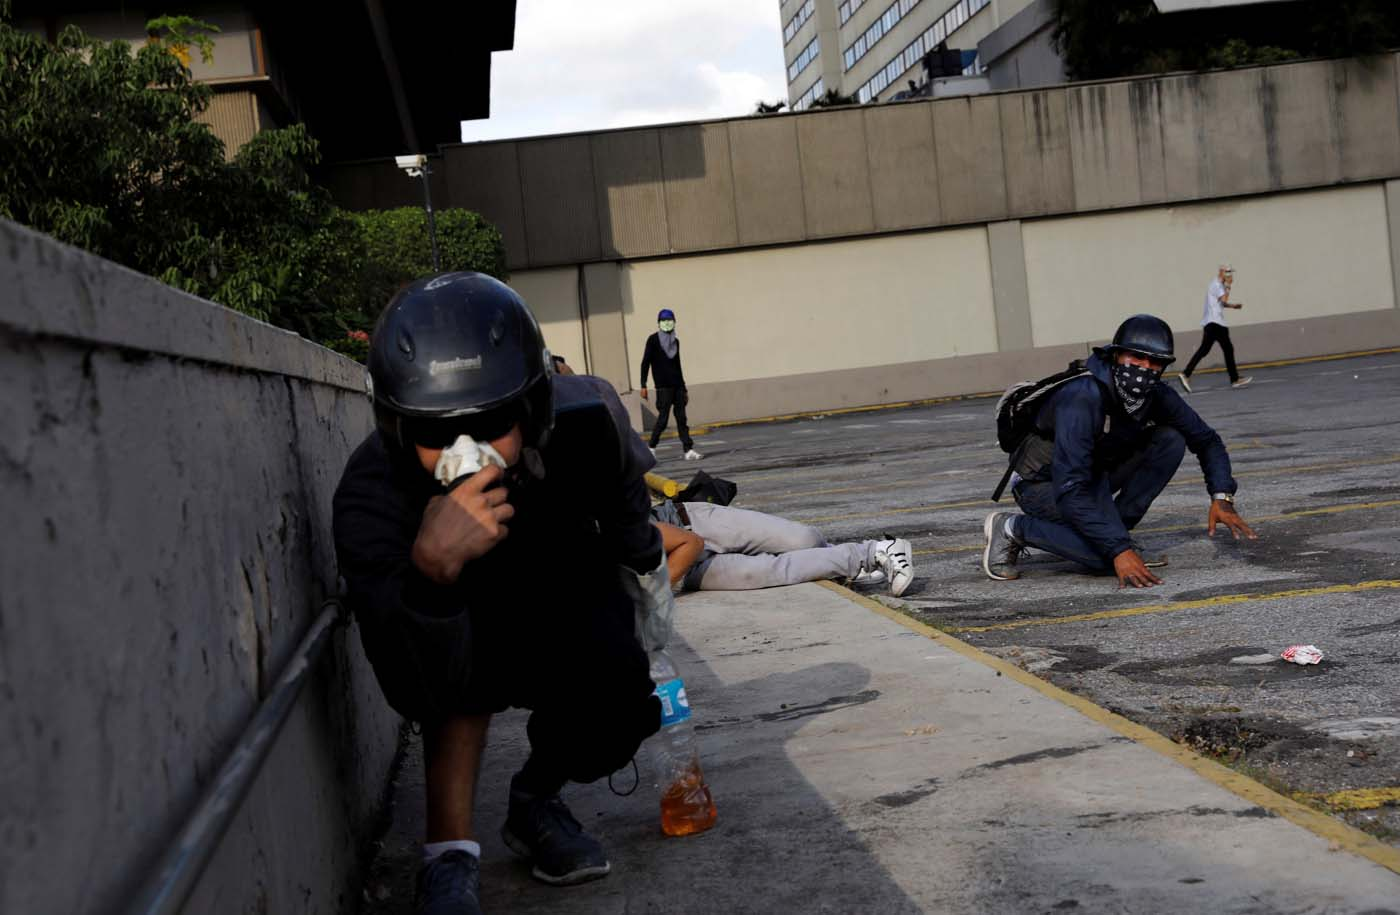 Demonstrators take cover during clashes with security forces at a rally against Venezuelan President Nicolas Maduro's government in Caracas, Venezuela, July 6, 2017. REUTERS/Andres Martinez Casares